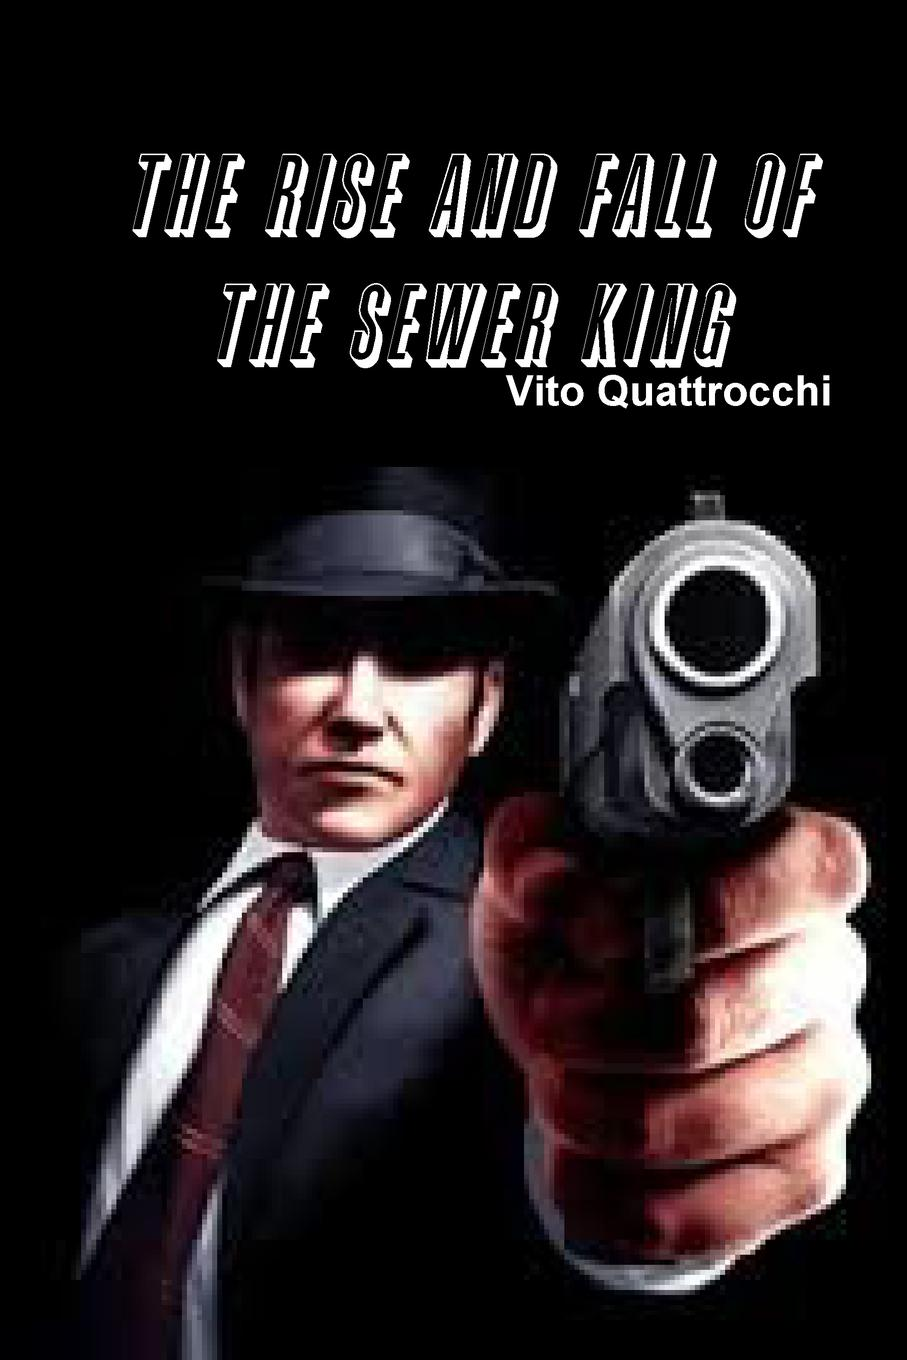 лучшая цена Vito Quattrocchi THE RISE AND FALL OF THE SEWER KING